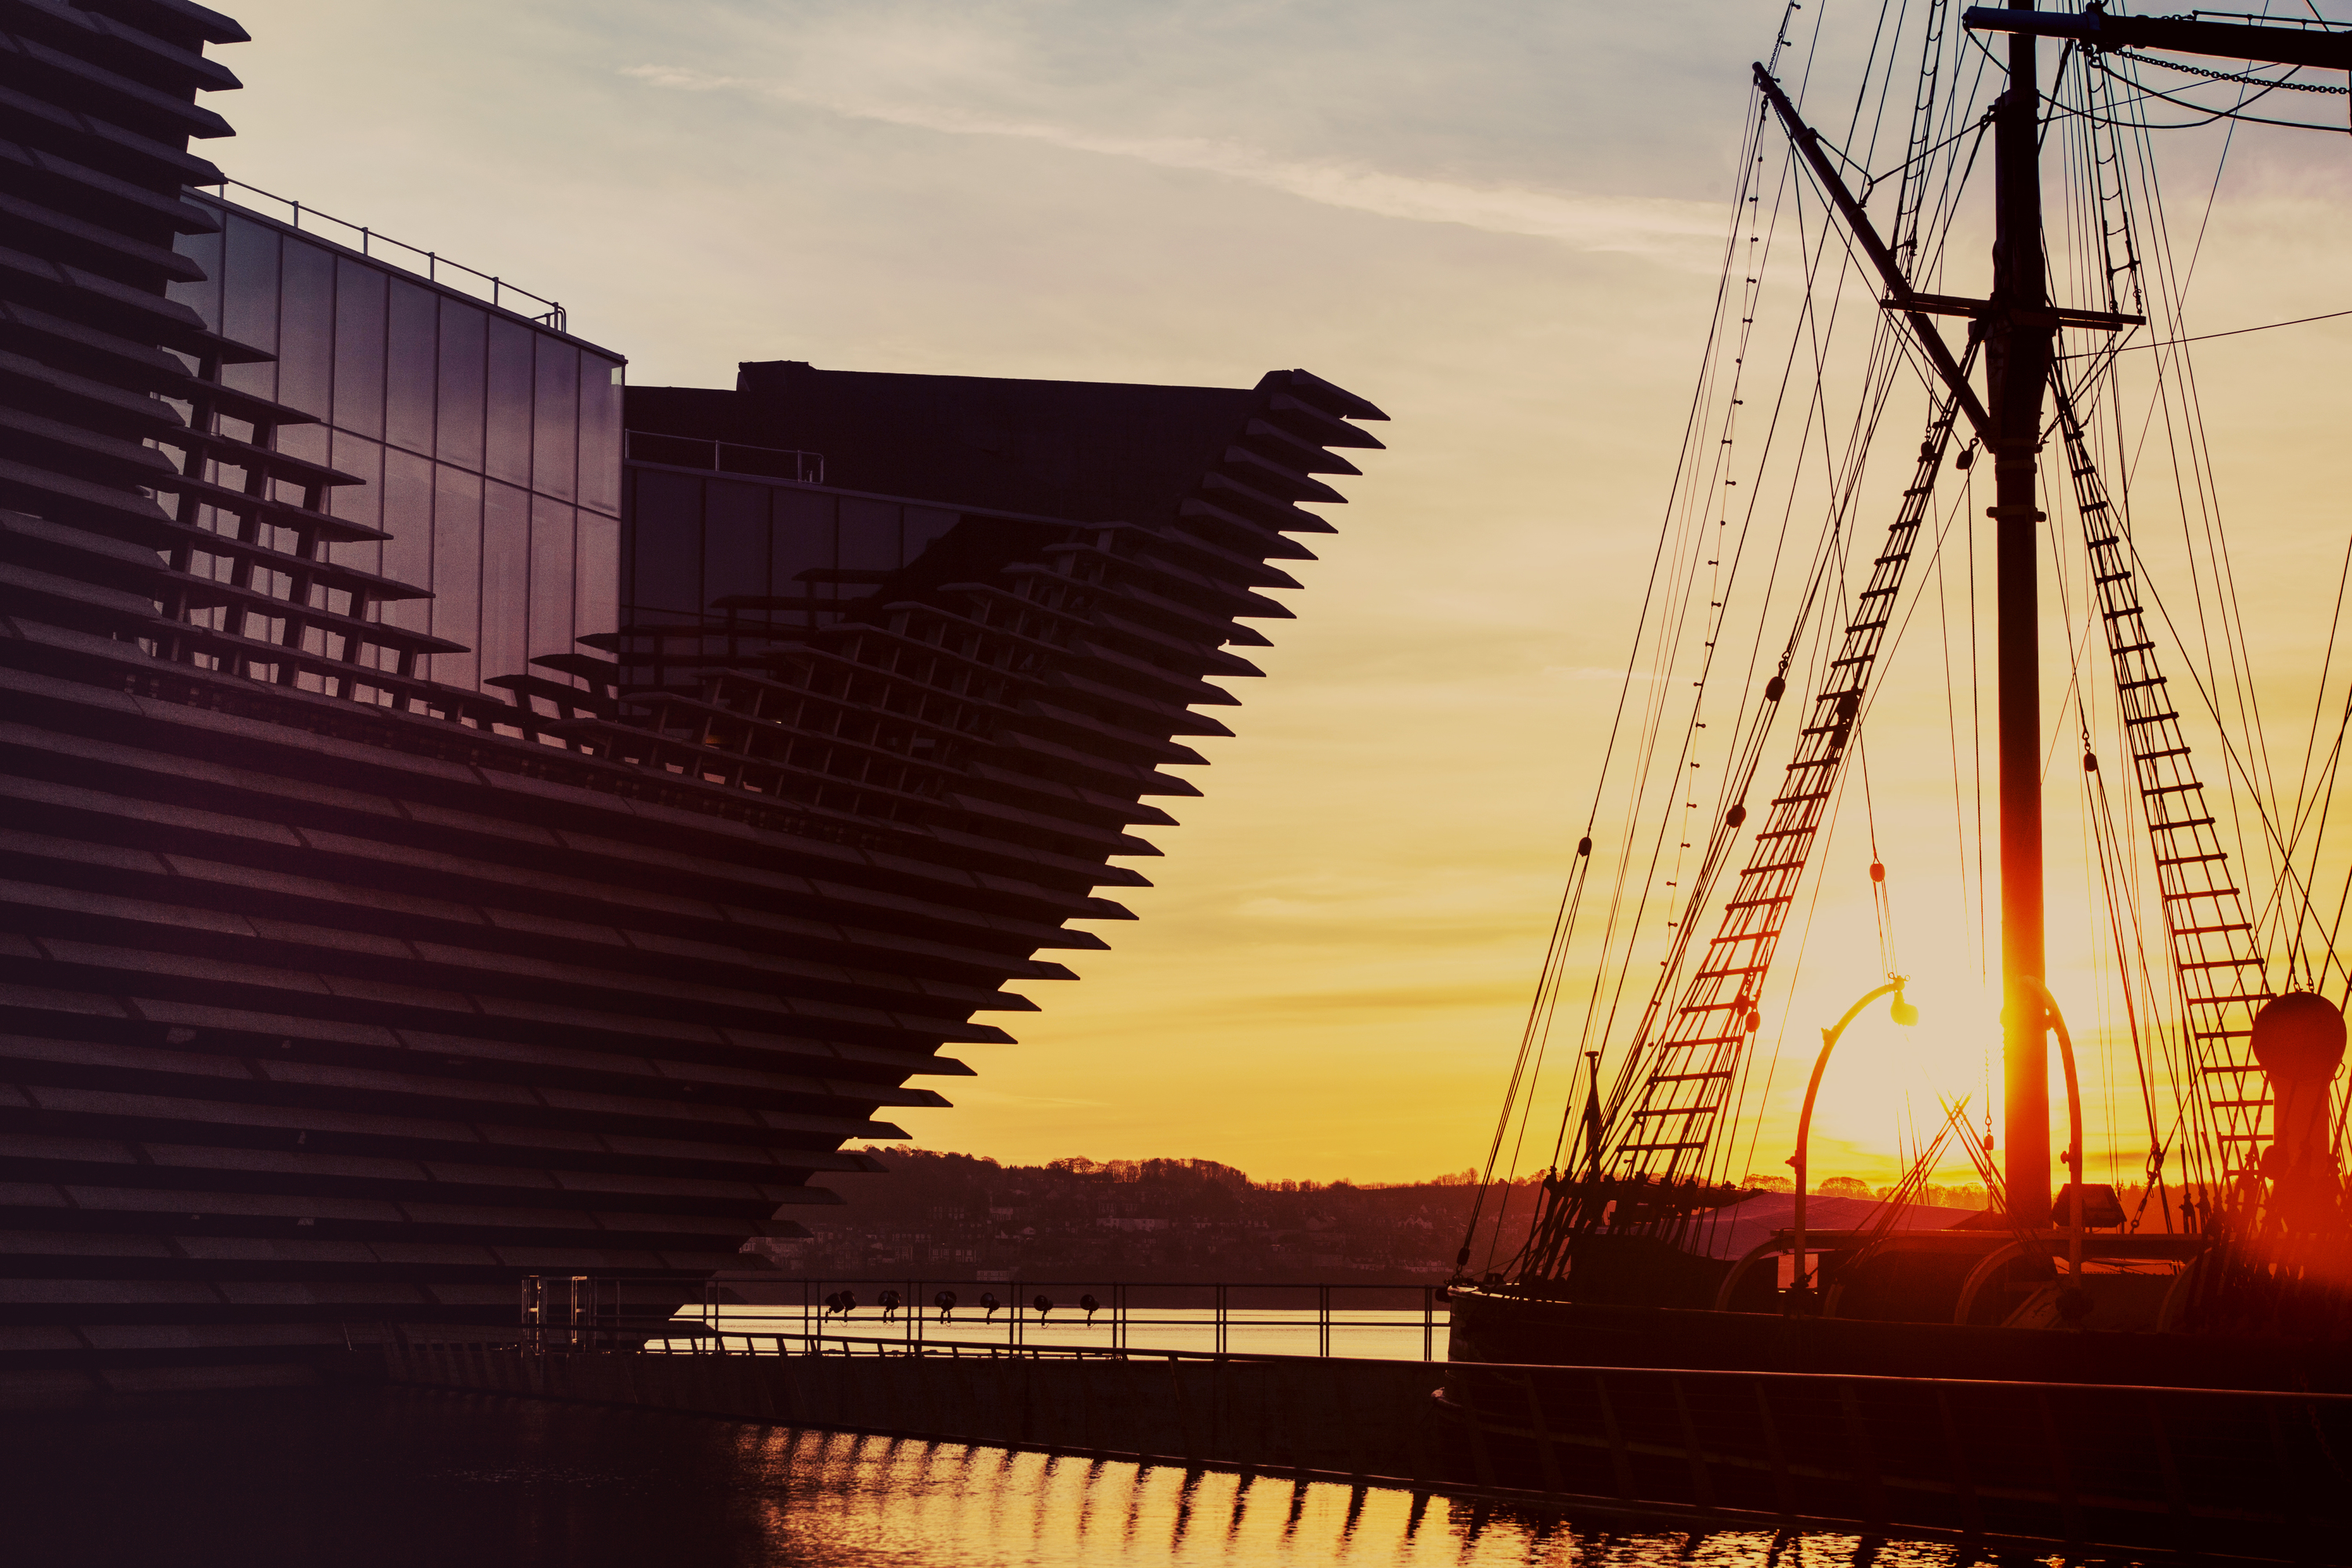 dundee V&A waterfront discovery ship sunset